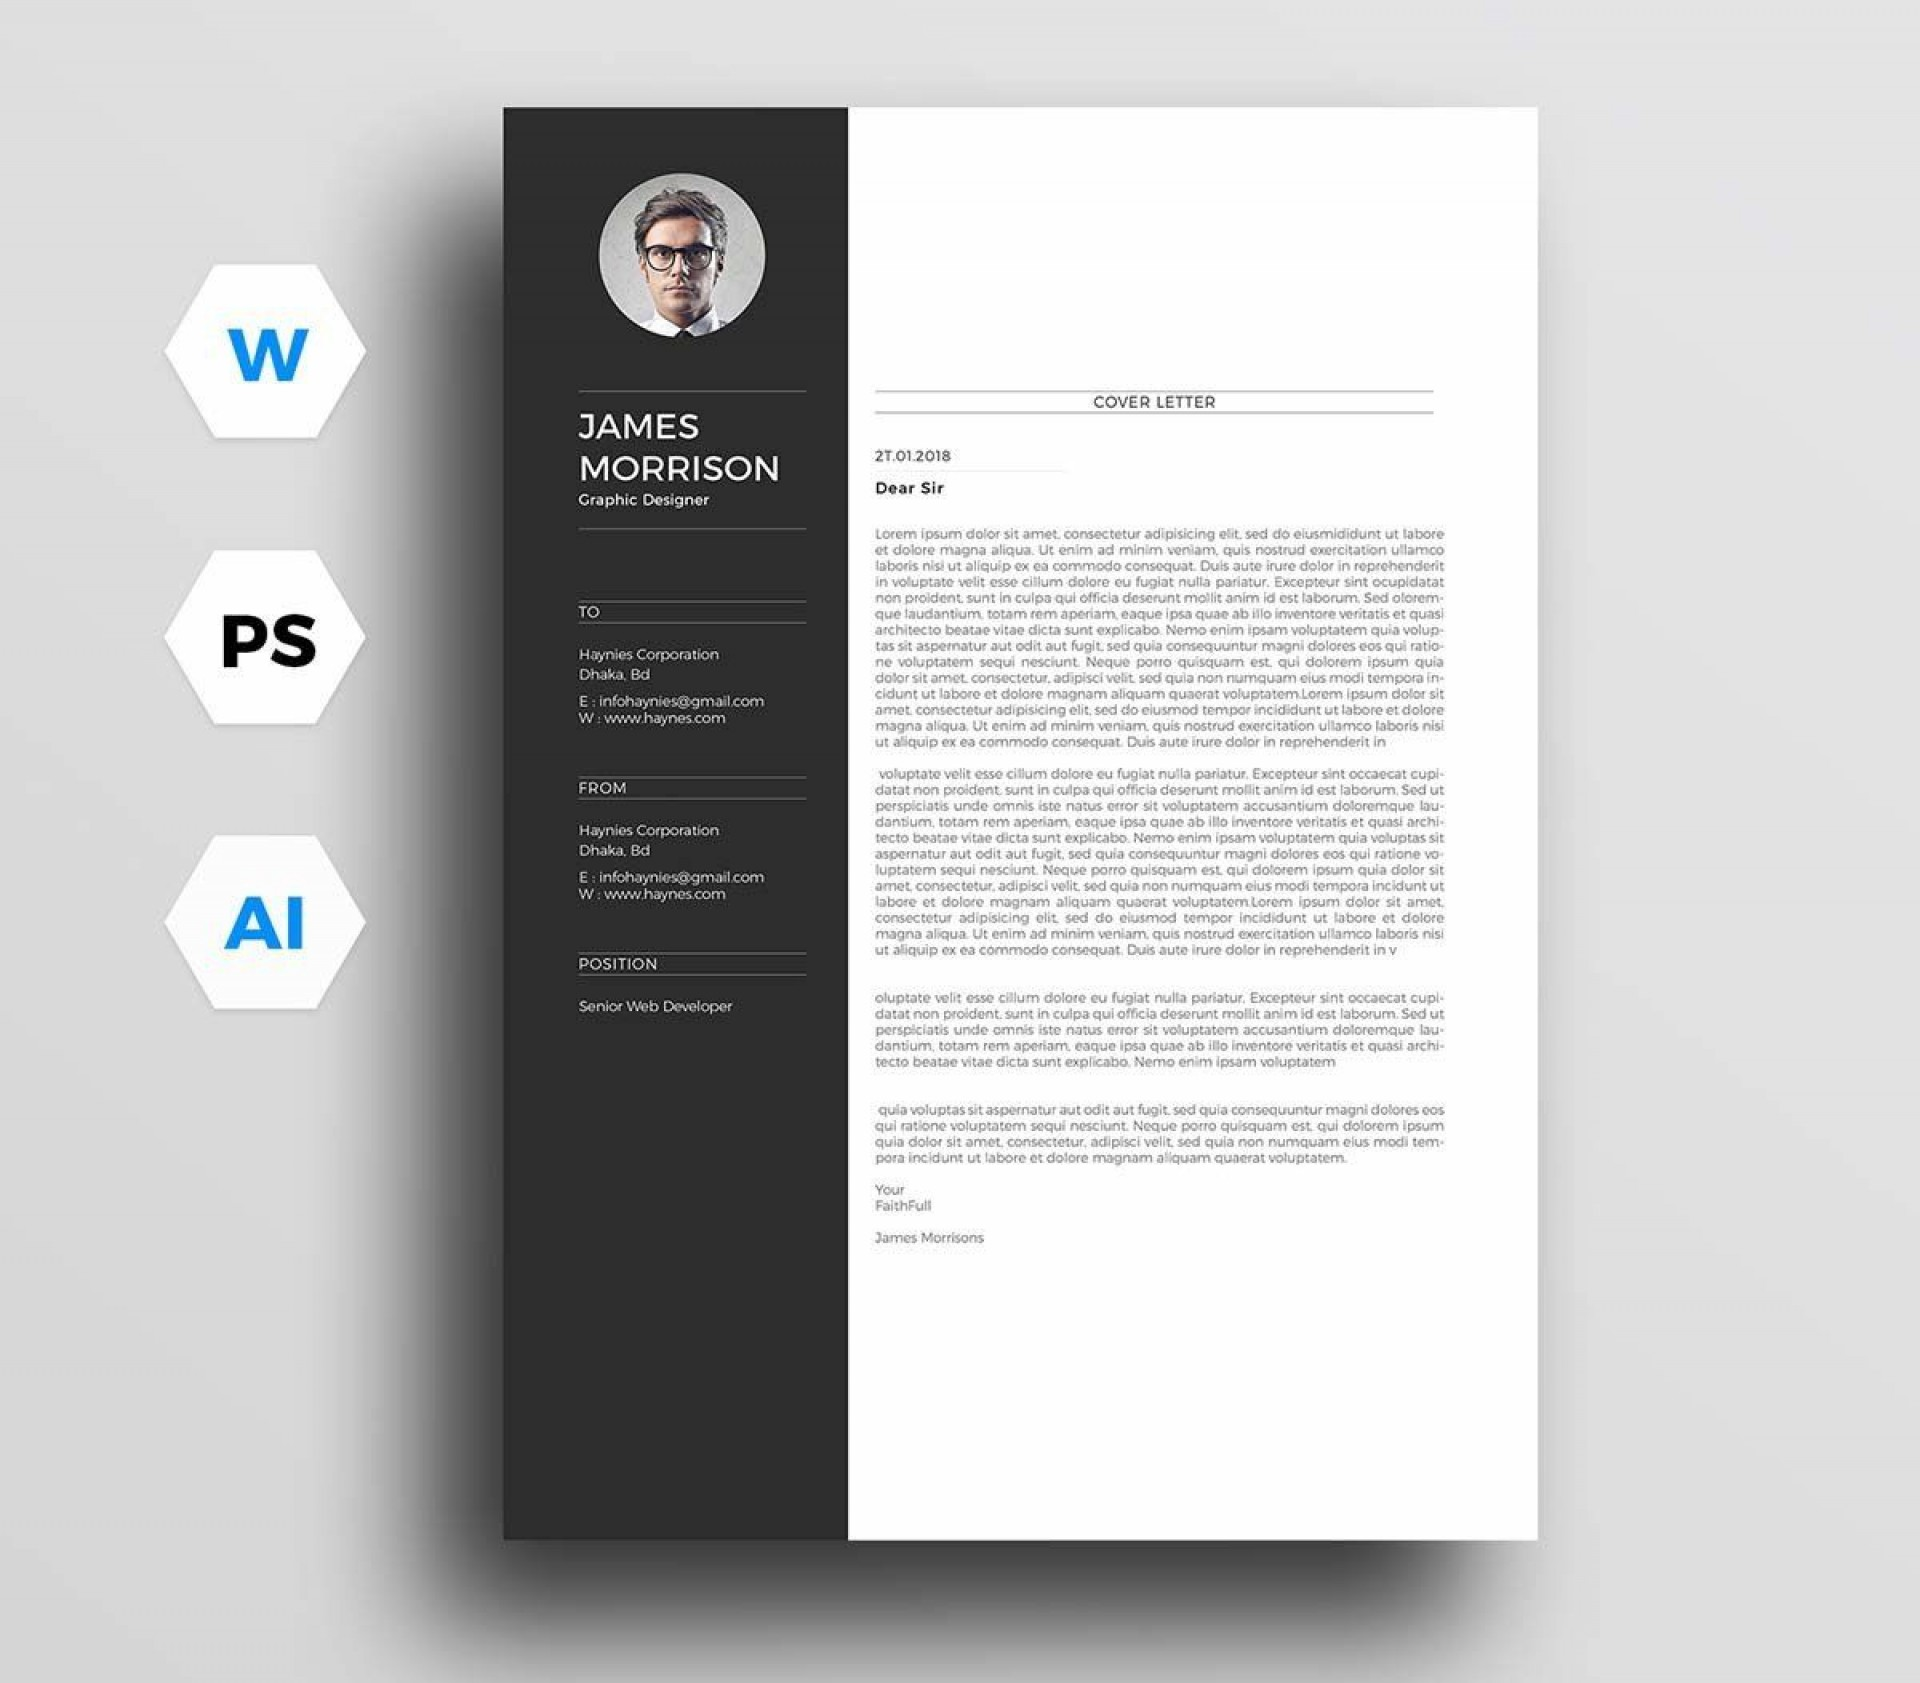 003 Archaicawful Cover Letter Template Download Pdf Photo  Free1920